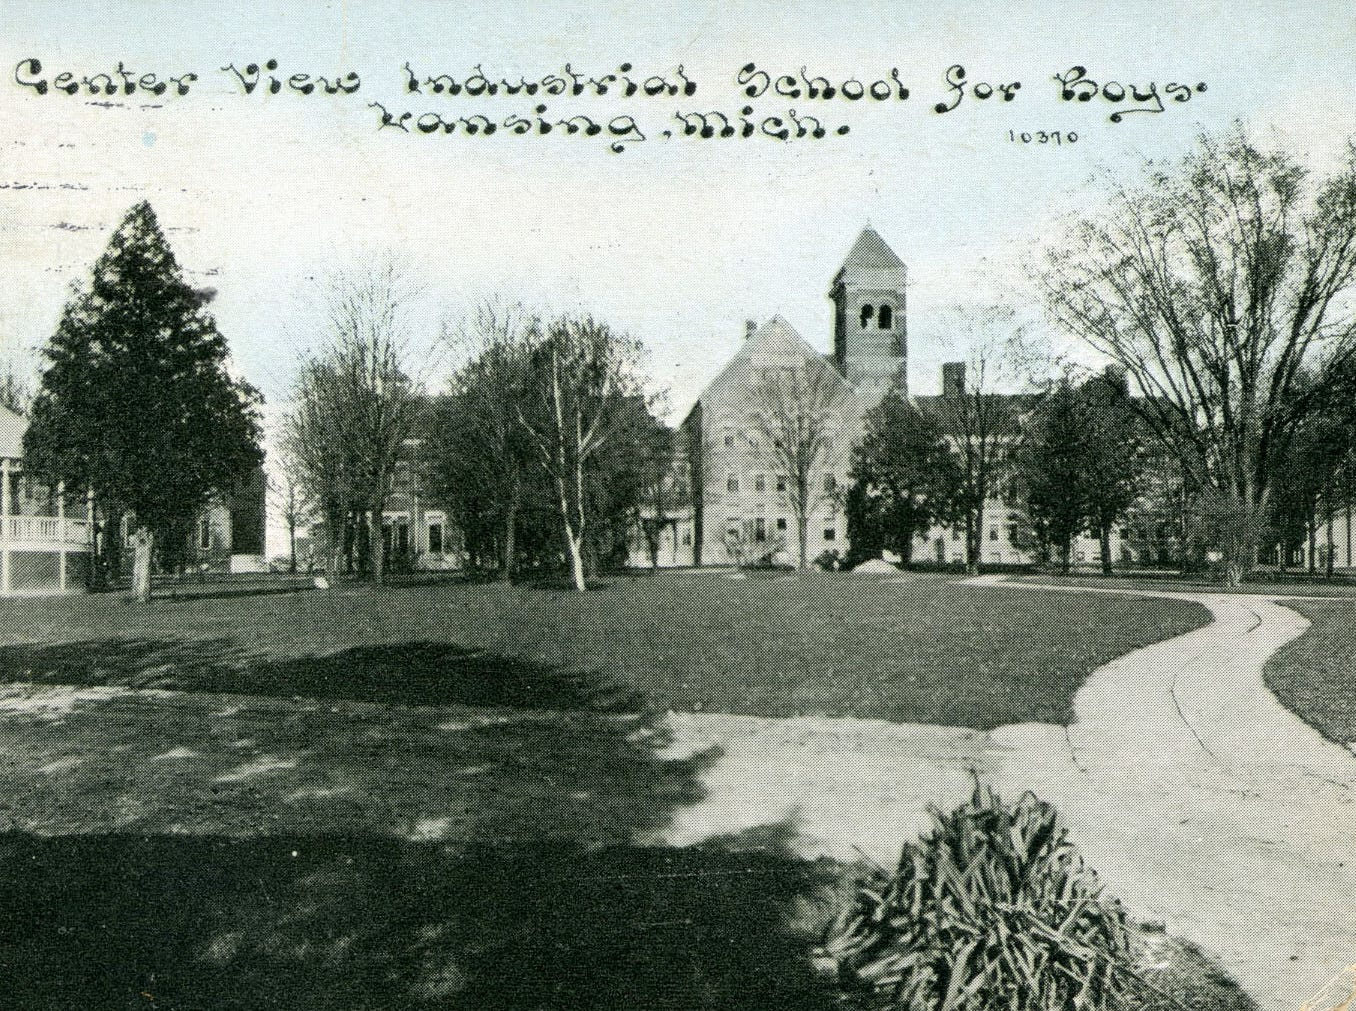 Campus of the Industrial School for Boys in Lansing in 1915.